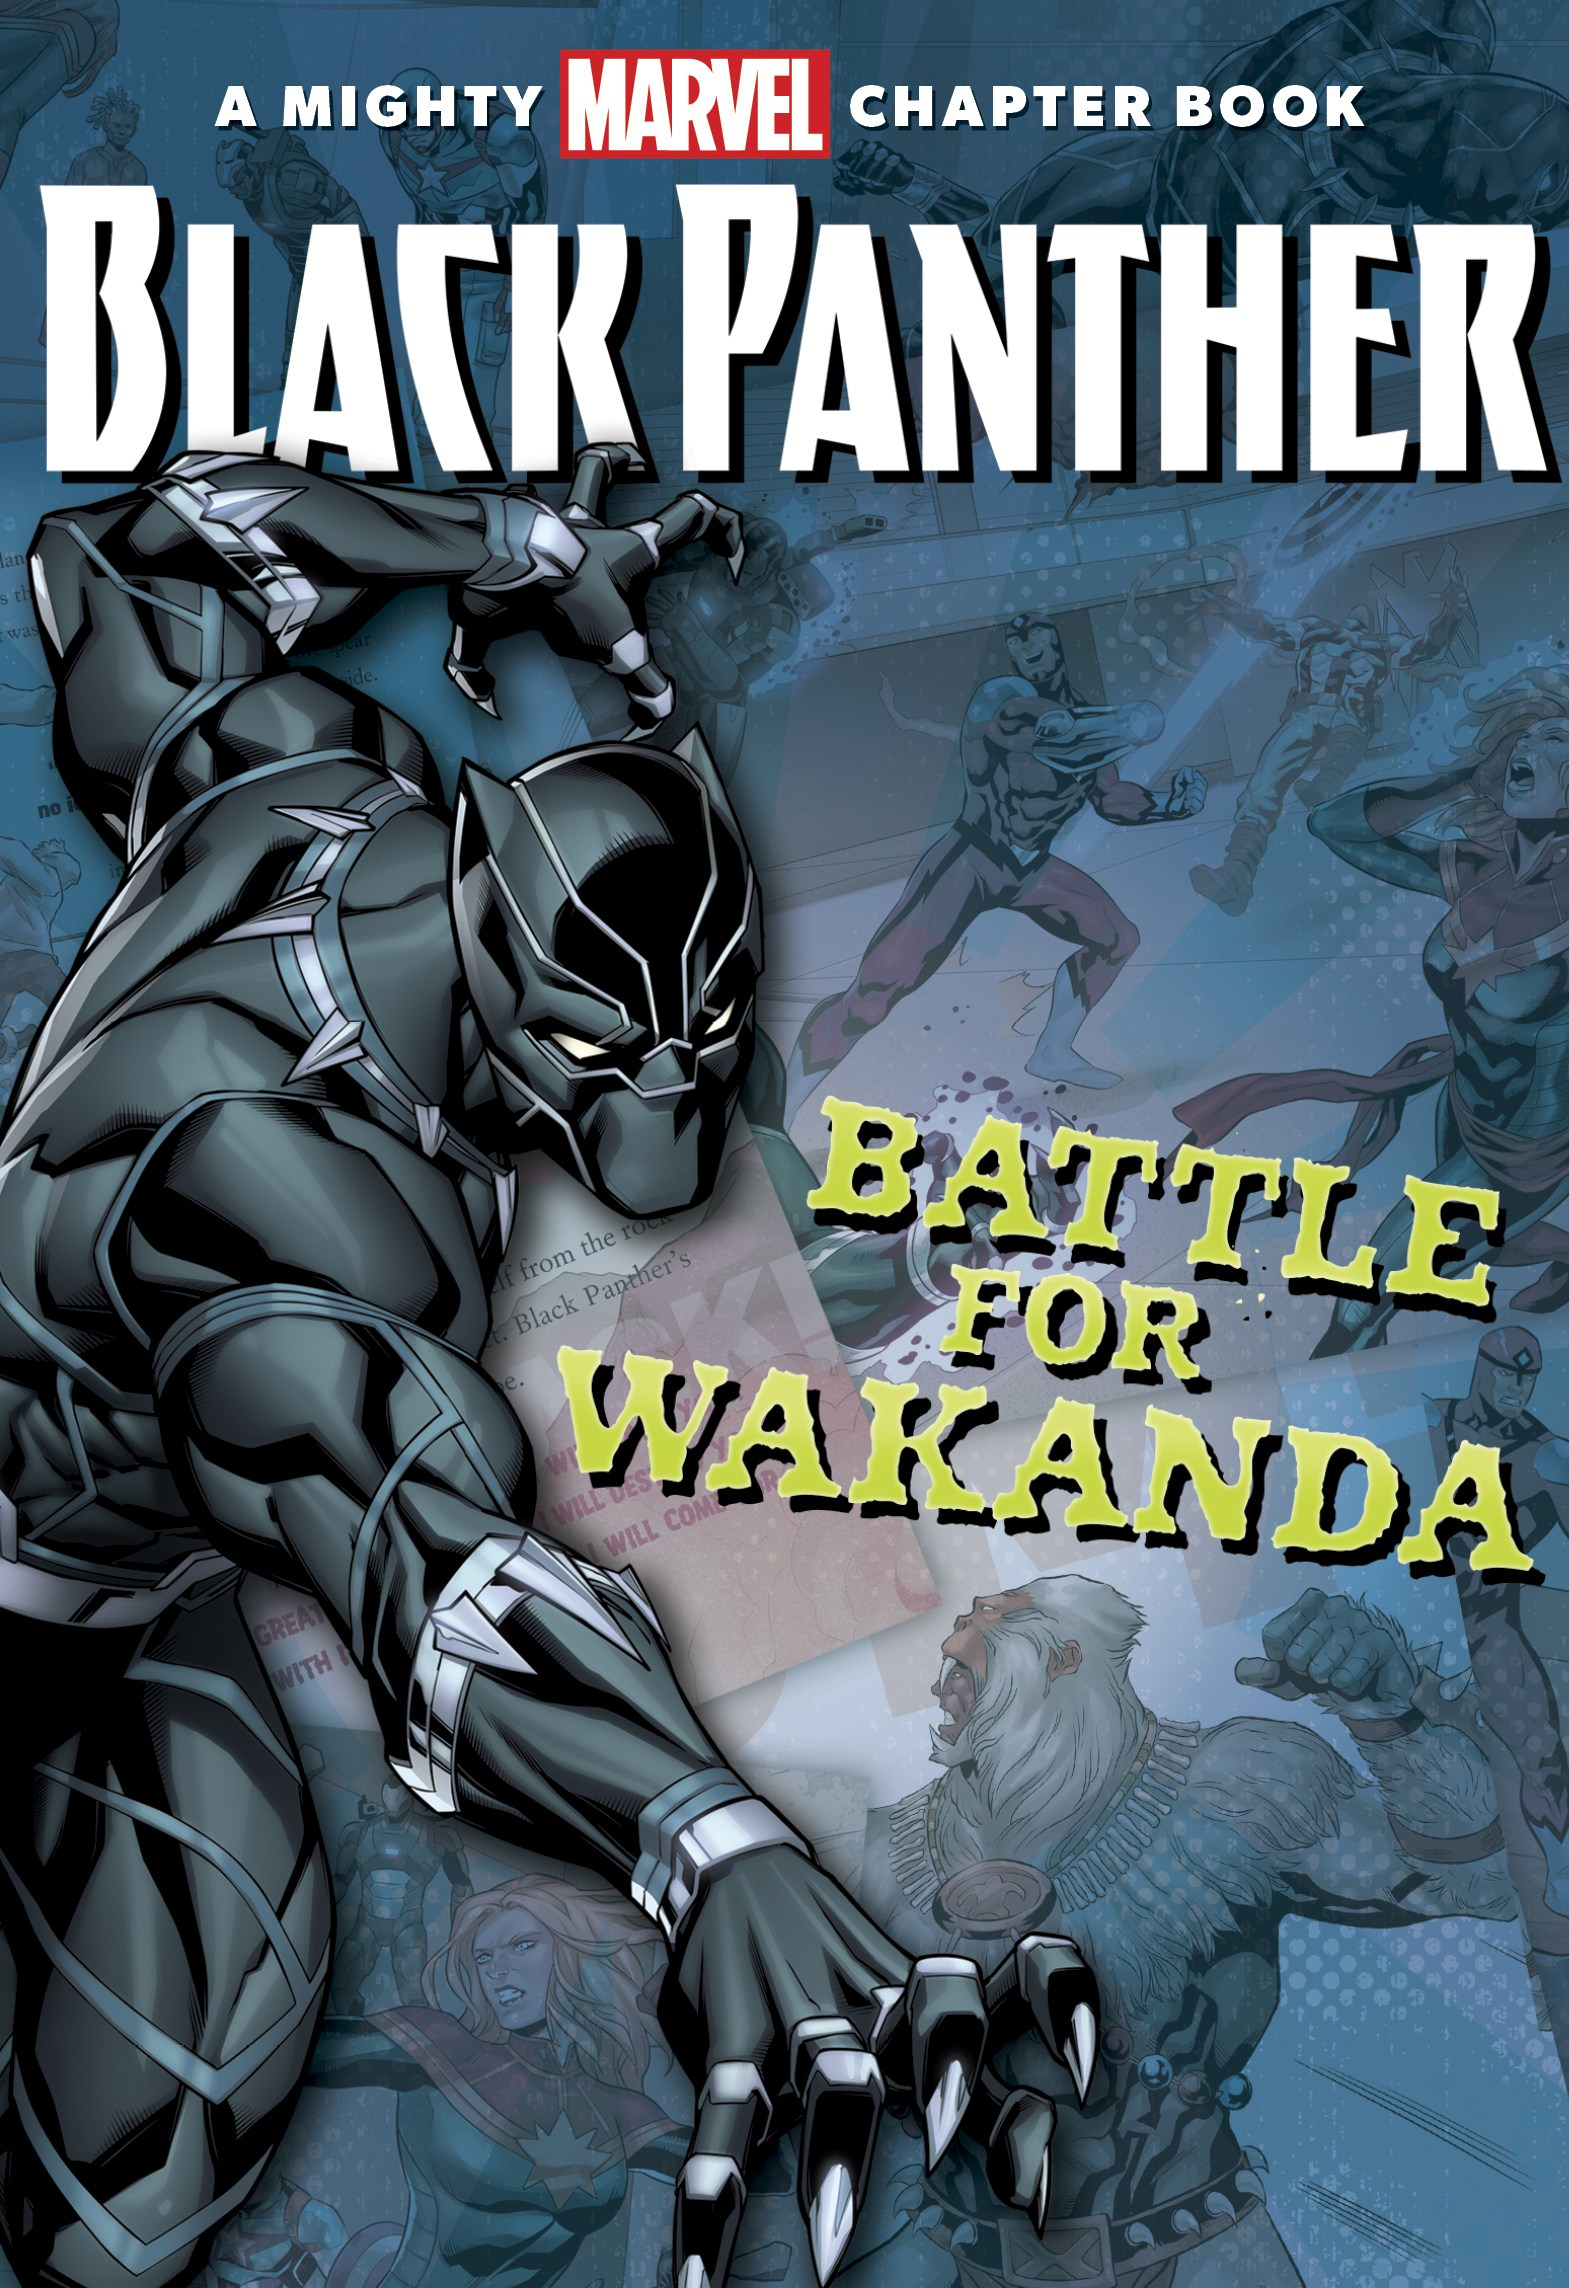 Black Panther COVER (1).jpg